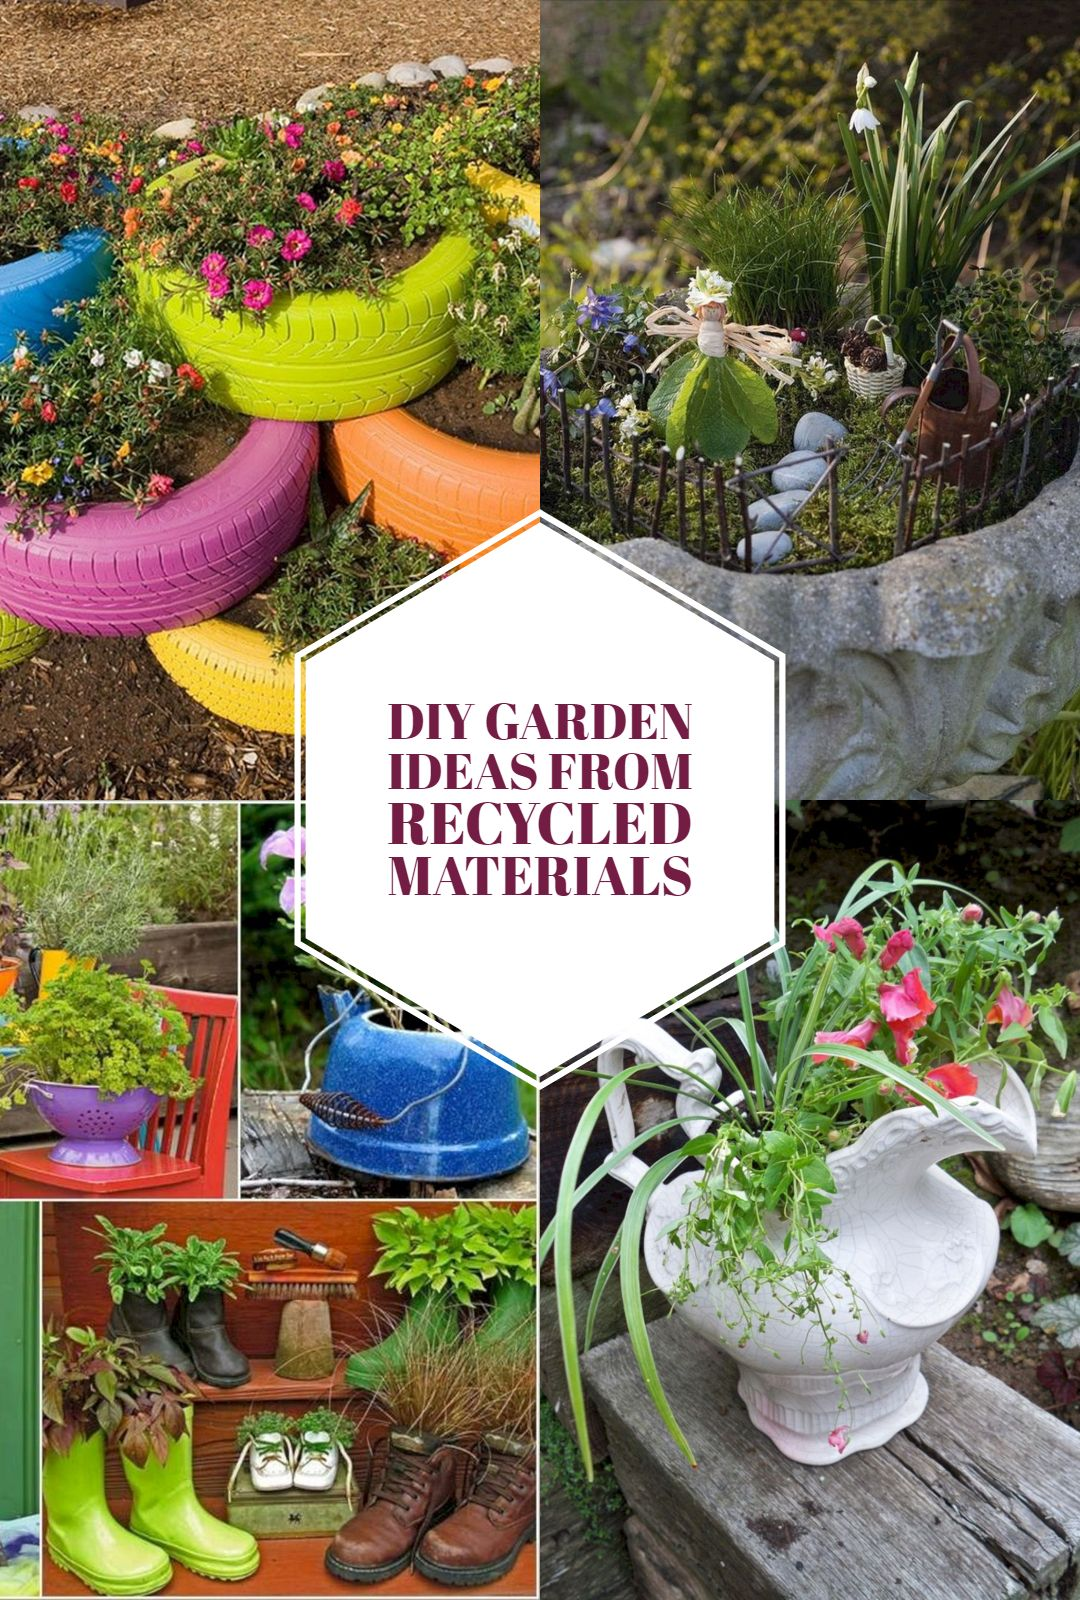 15 Wonderful Diy Garden Ideas From Recycled Materials Recycled